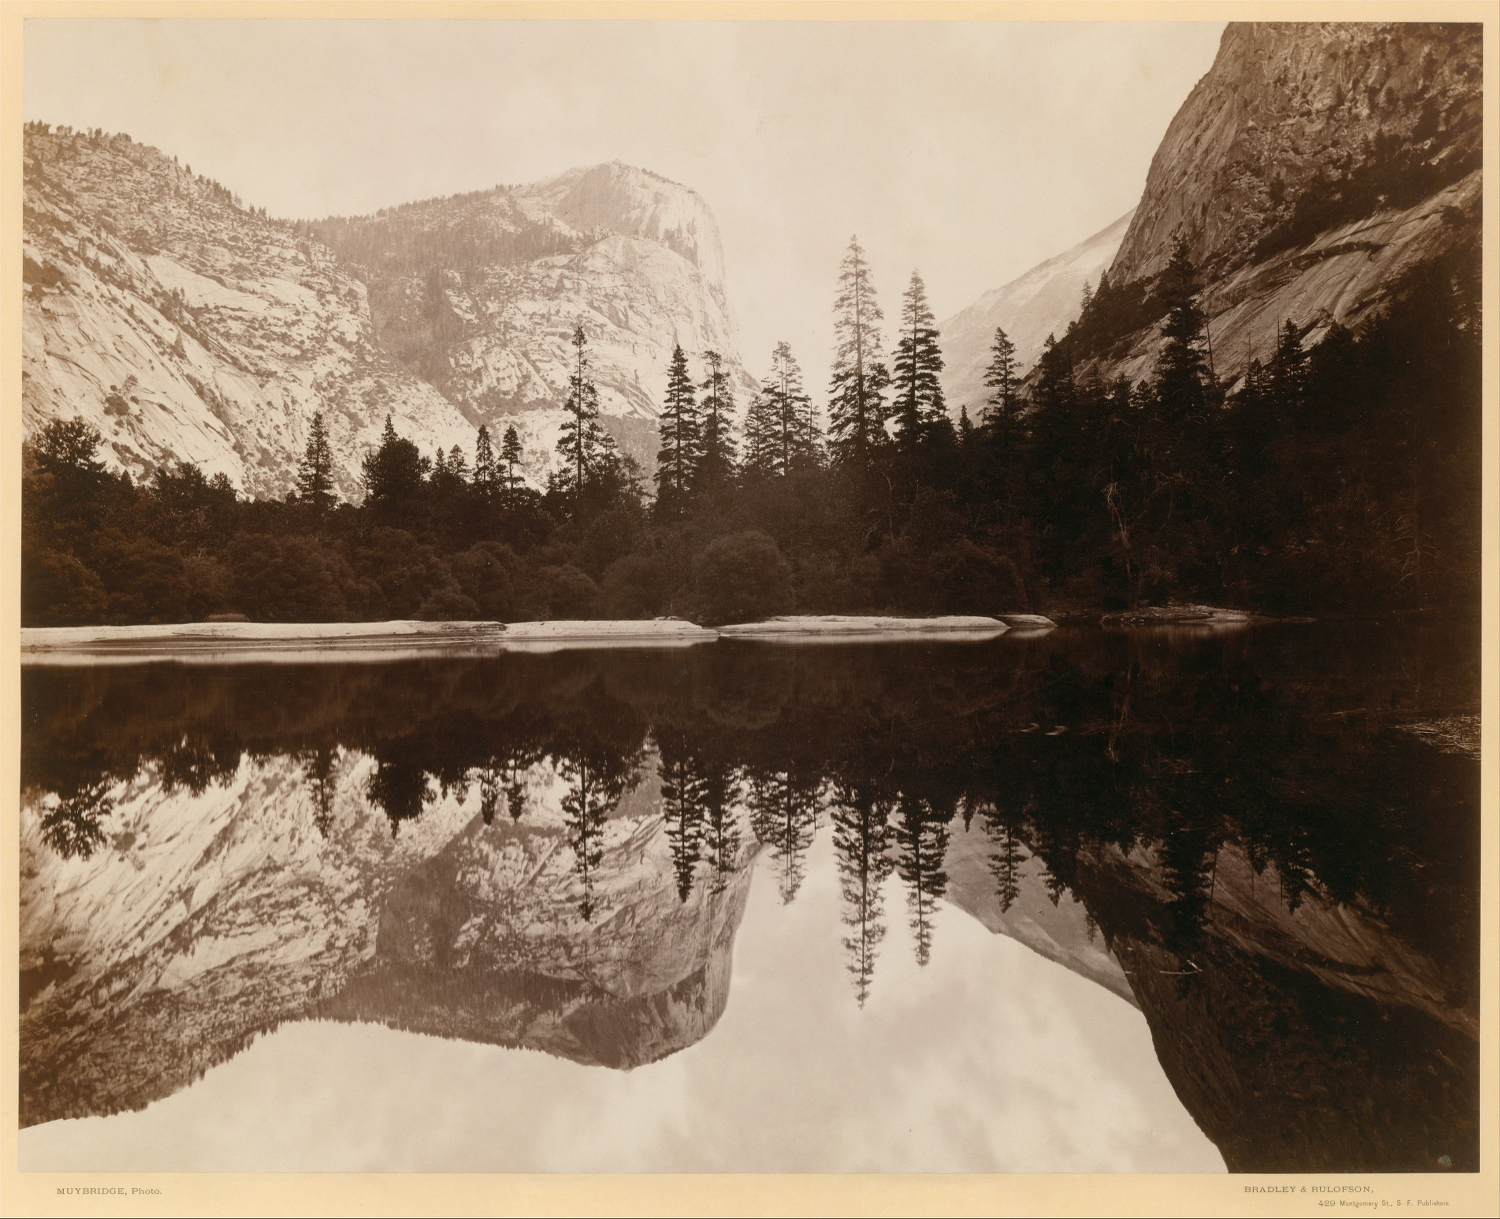 Image of Yosemite by Eadward Muybridge, 1868